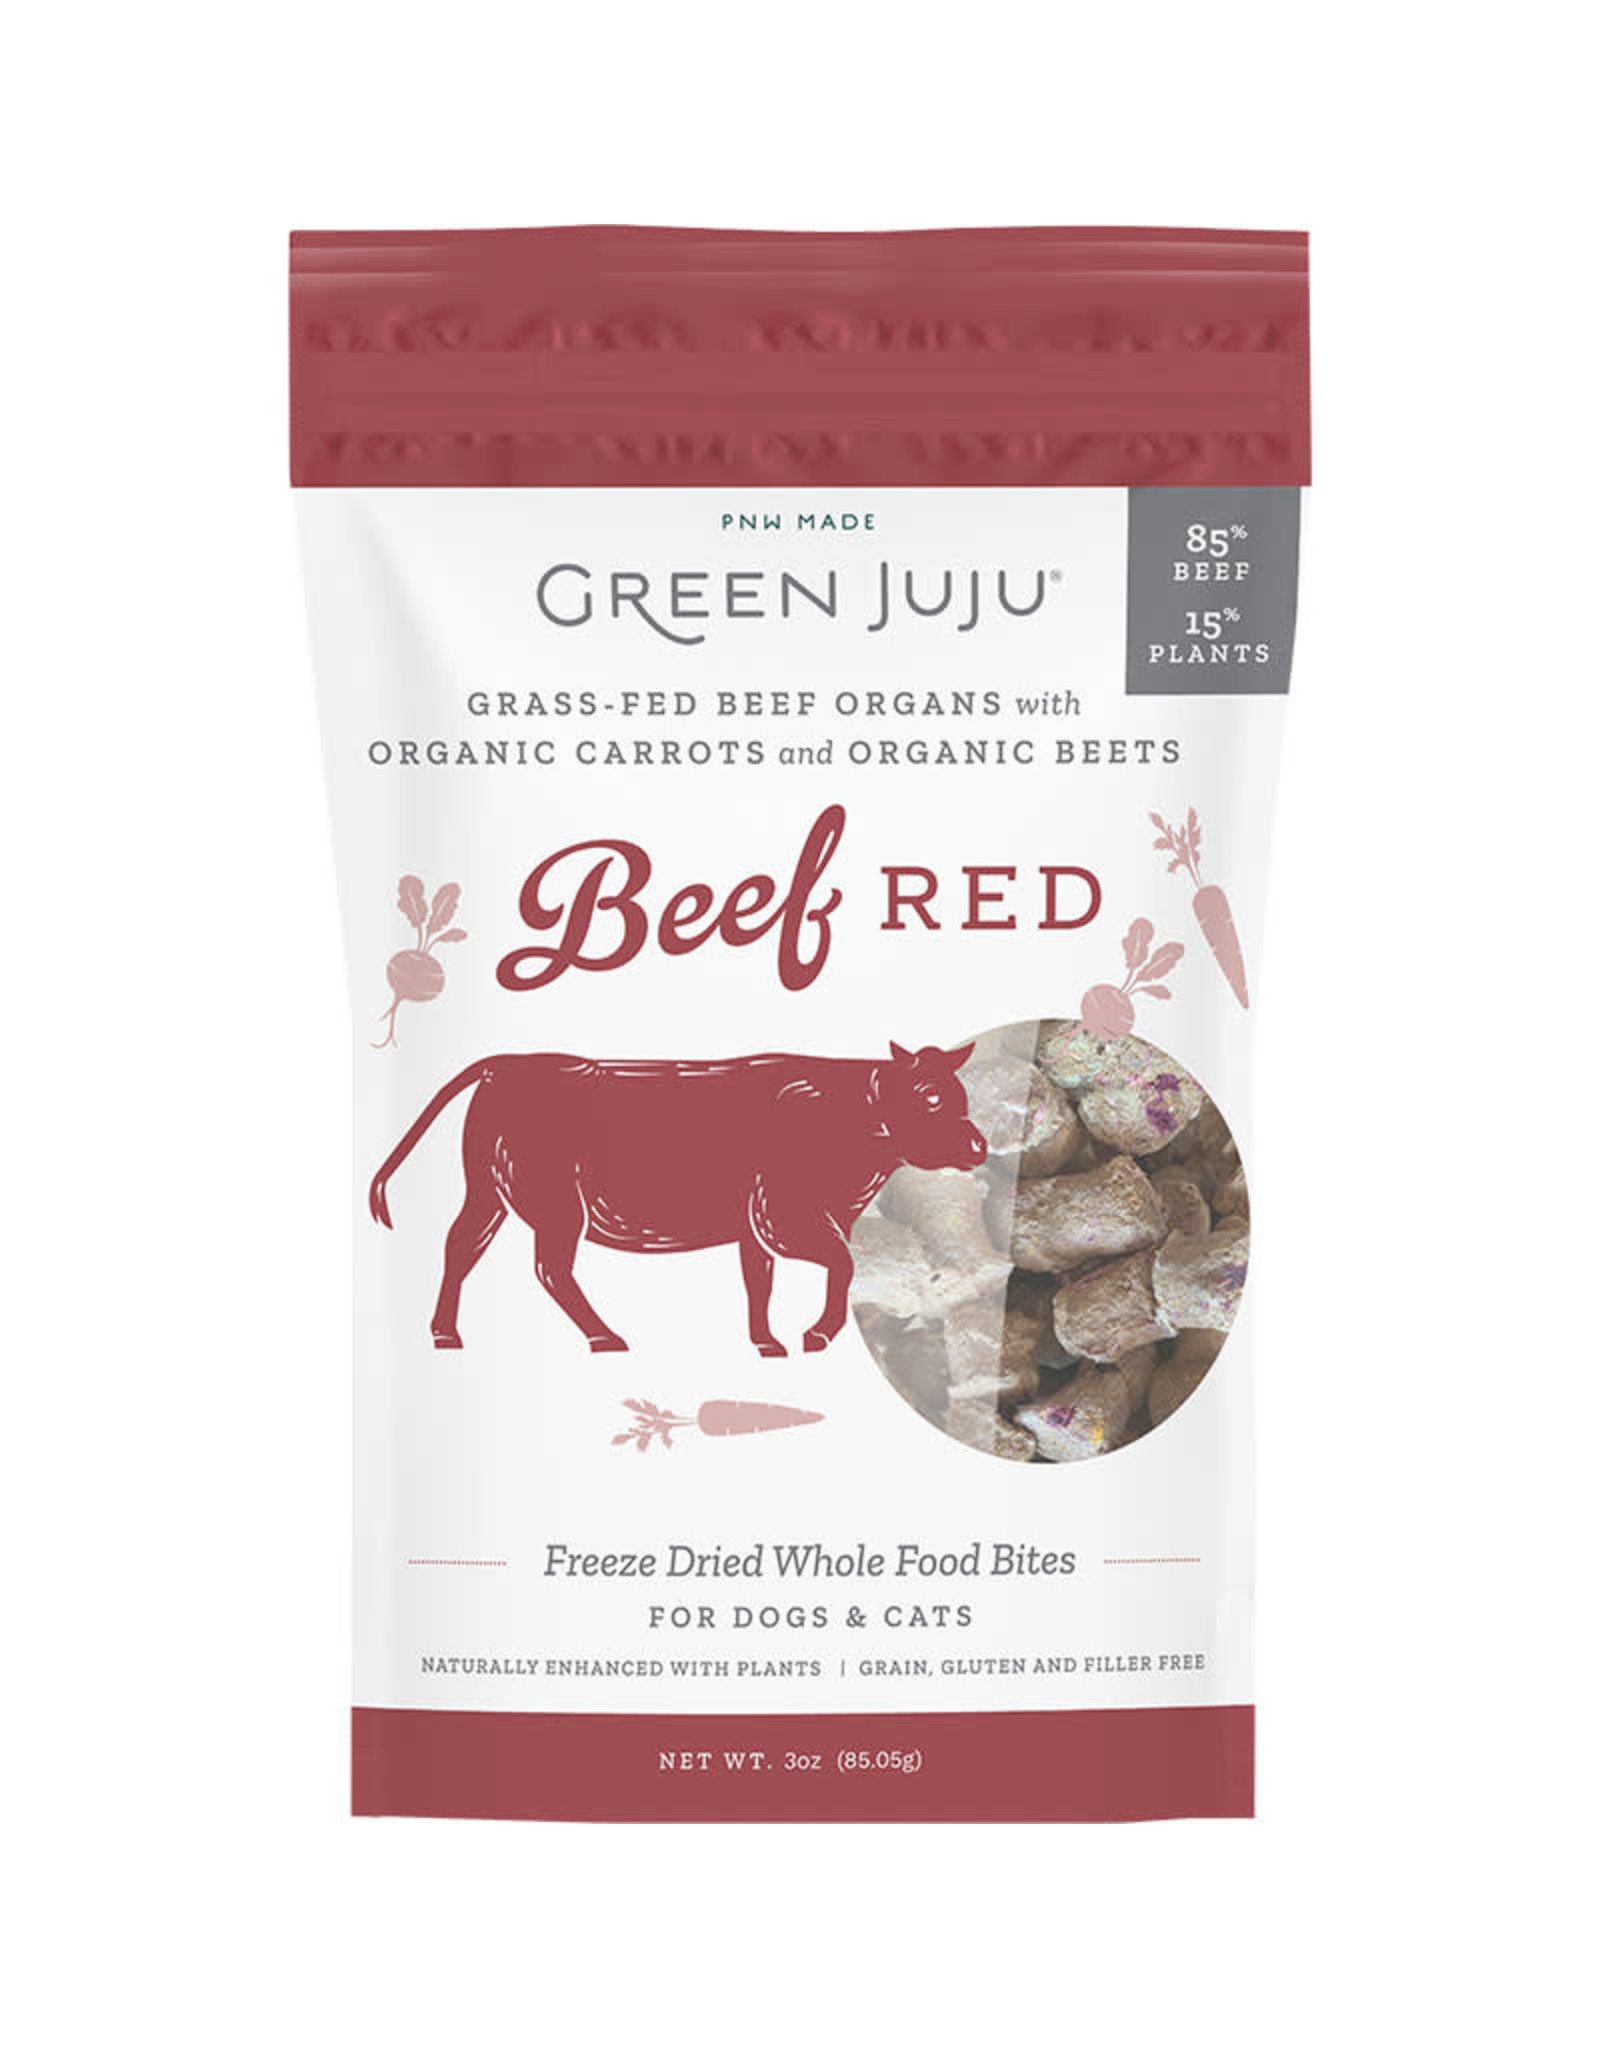 Green Juju Green Juju Beef Red Freeze Dried Whole Food Bites for Dogs & Cats